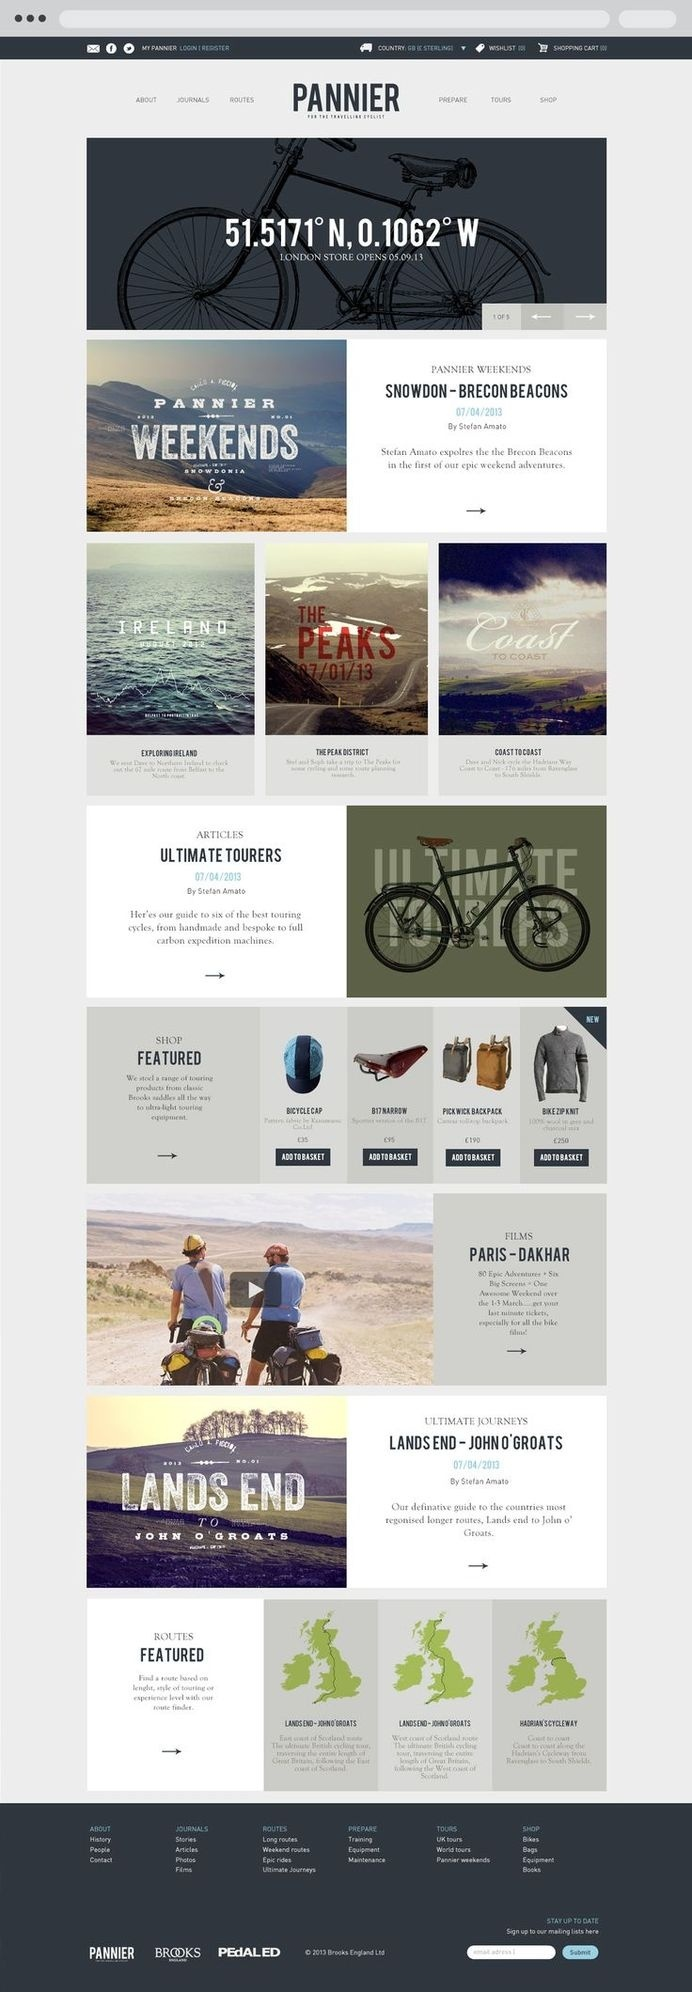 Pannier, A cycle touring website designed by http://www.p53.co.uk #touring #cycle #design #graphic #brand #cycling #web